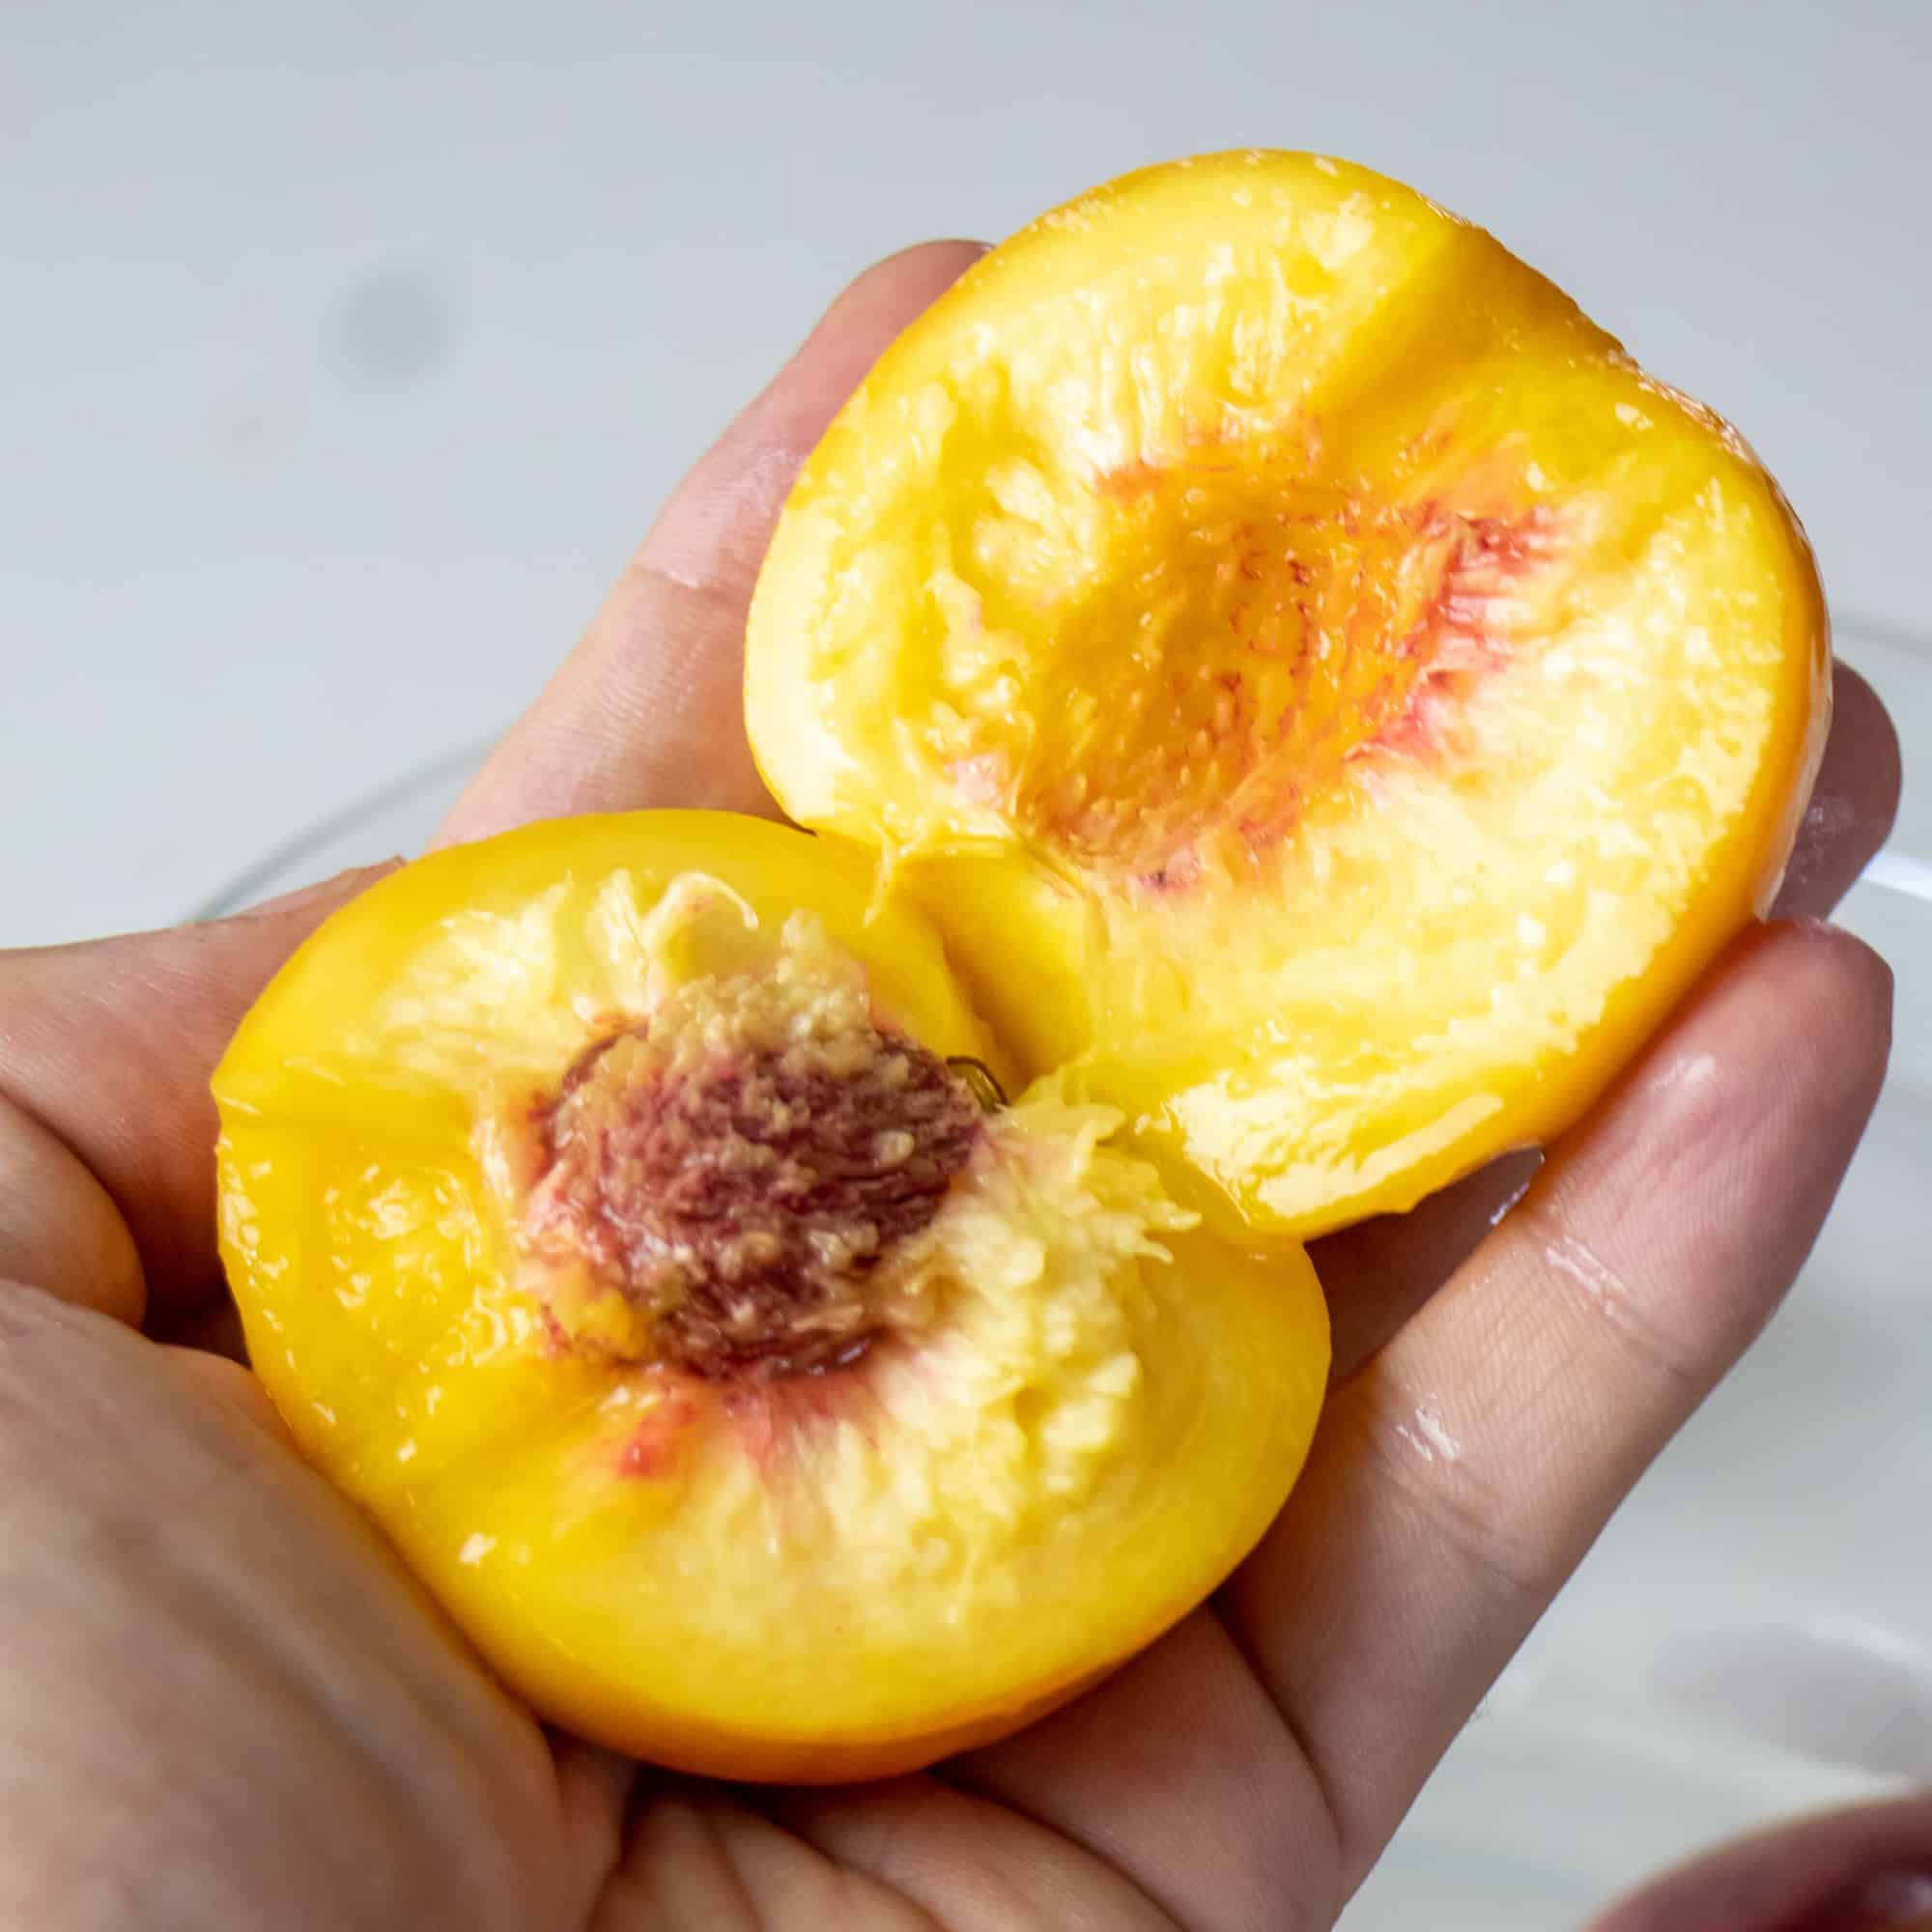 Cut the peach in half around the pit and remove.